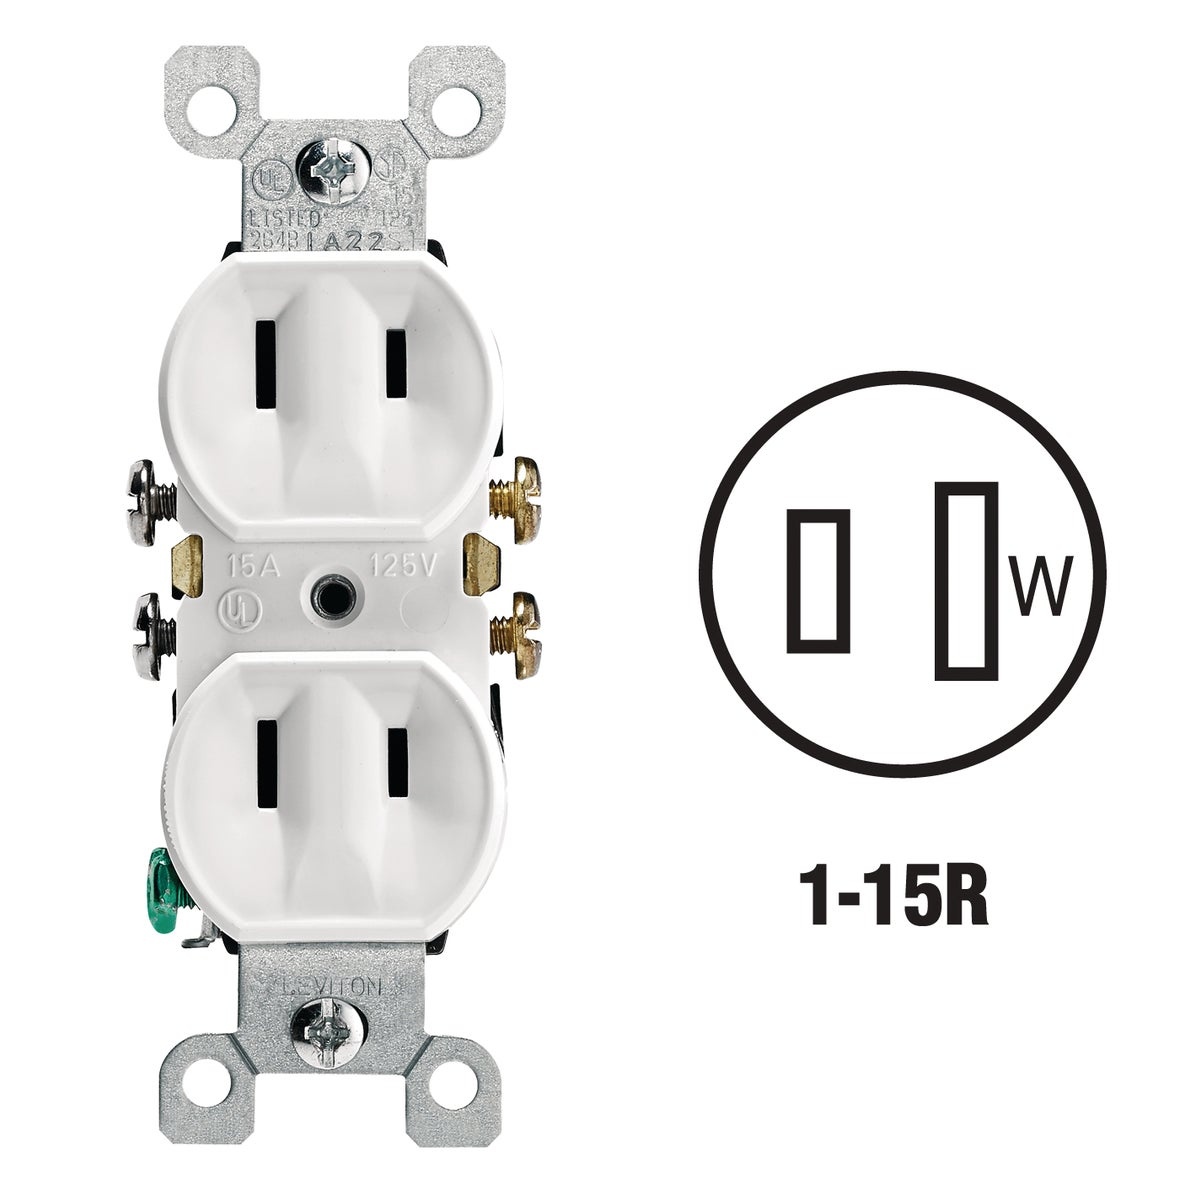 WHT DUPLEX OUTLET